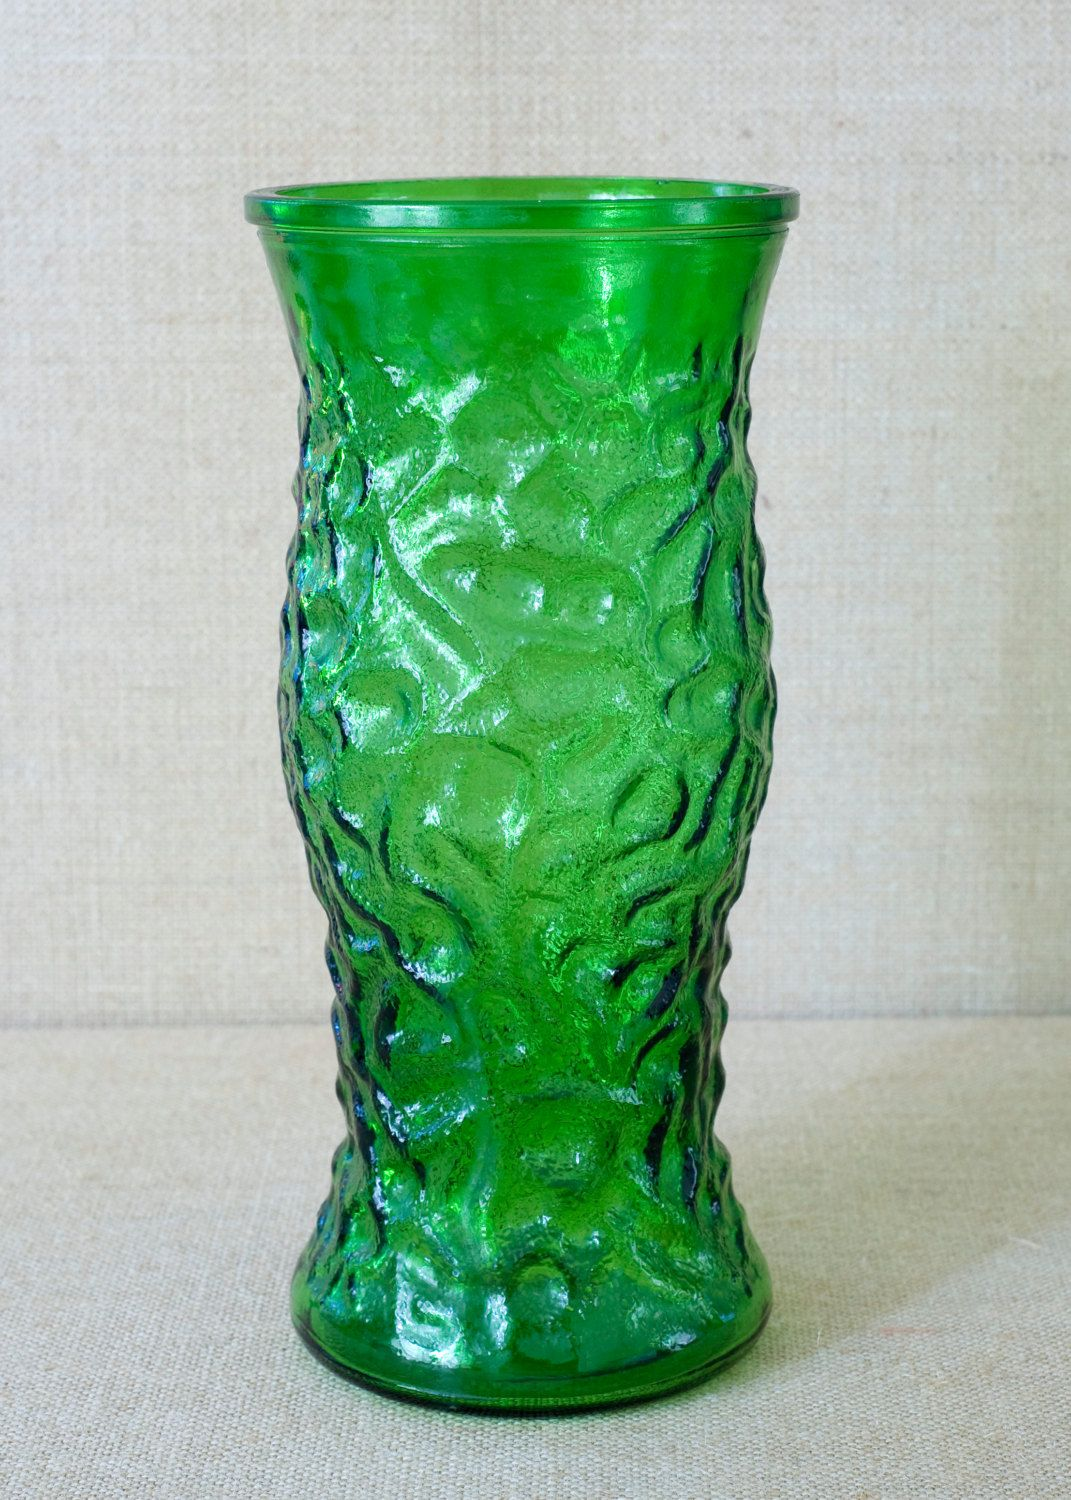 Vintage hoosier glass vase by myaffordablevintage on etsy vintage hoosier glass vase by myaffordablevintage on etsy reviewsmspy